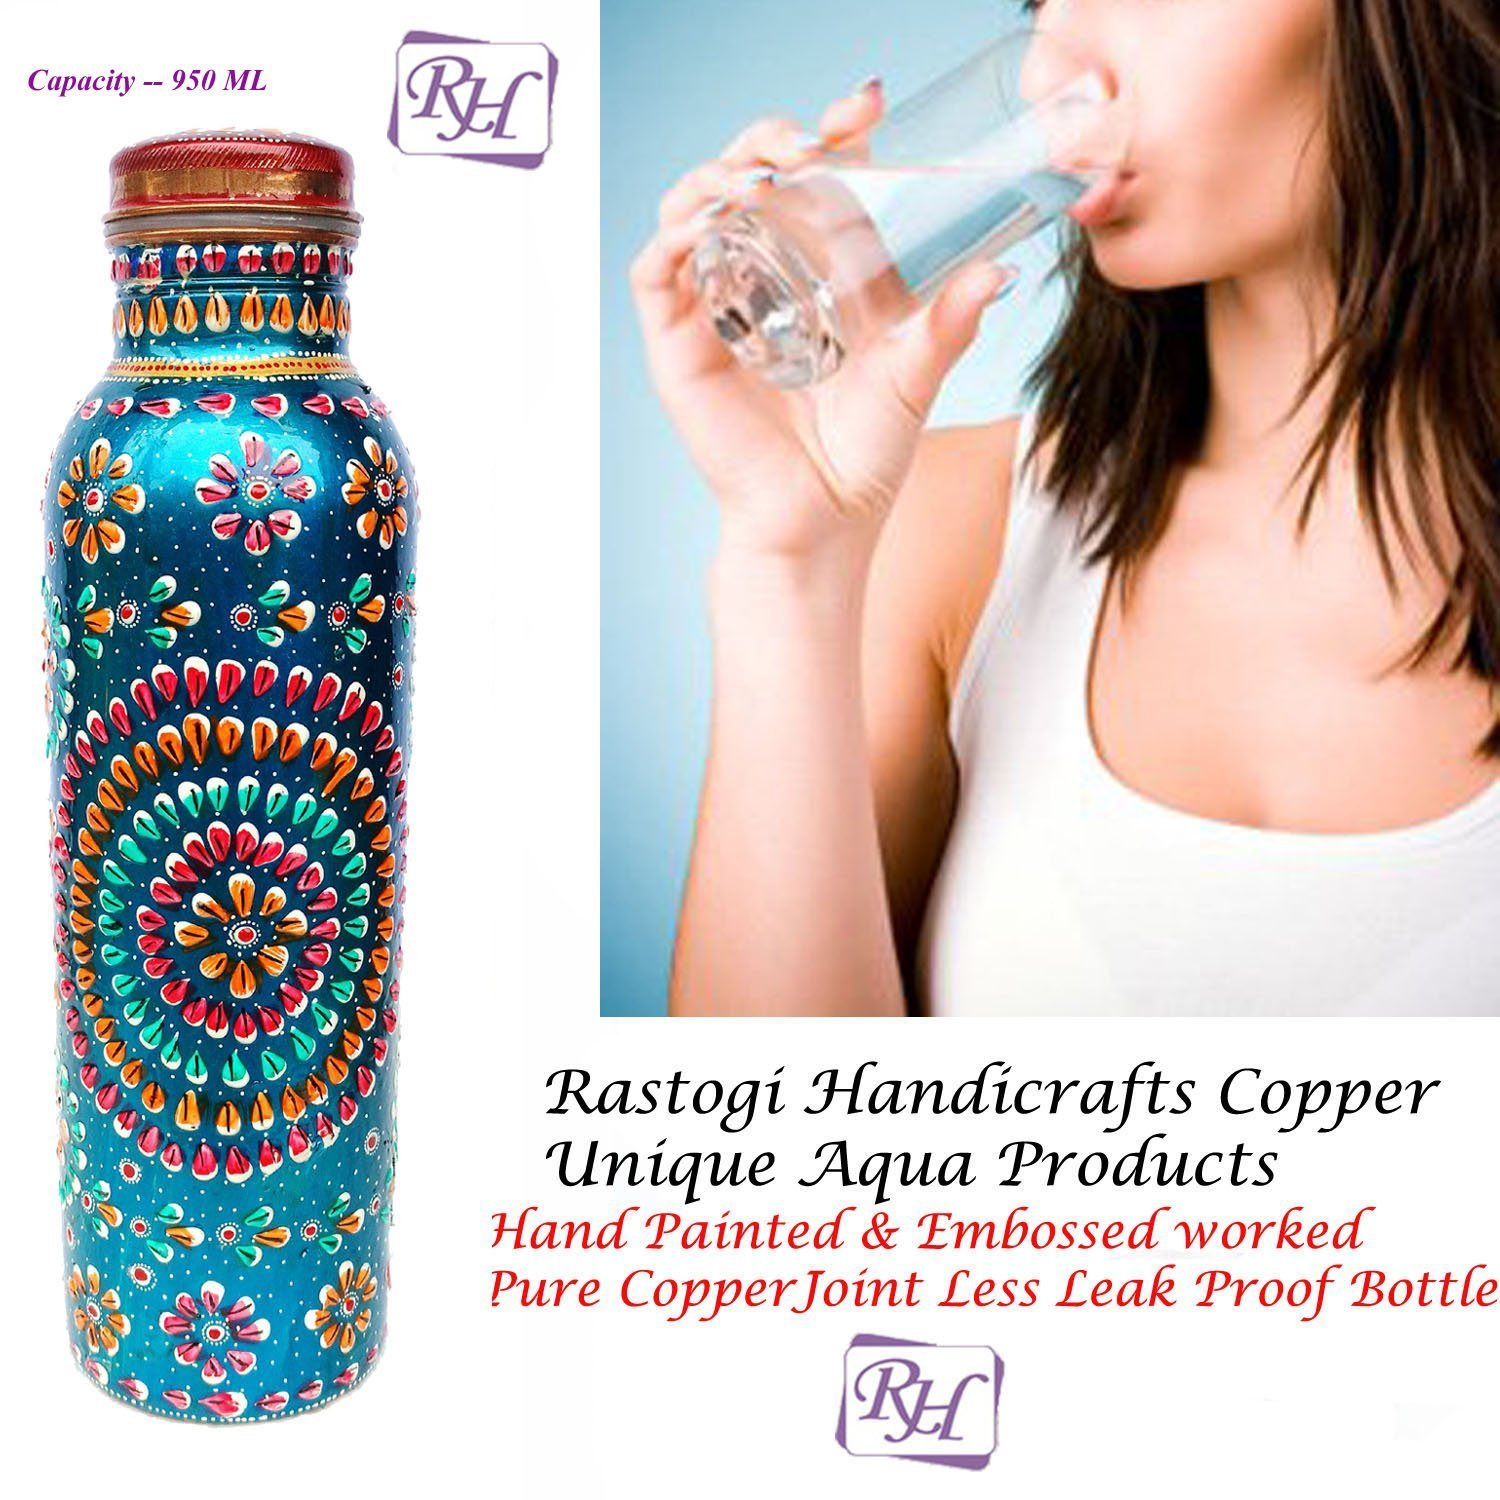 Rastogi Handicrafts Copper Joint less leak-proof Water storage Bottle for Health Benefit Set of 4 With One Insulated Bag (FREE) by Rastogi Handicrafts (Image #3)